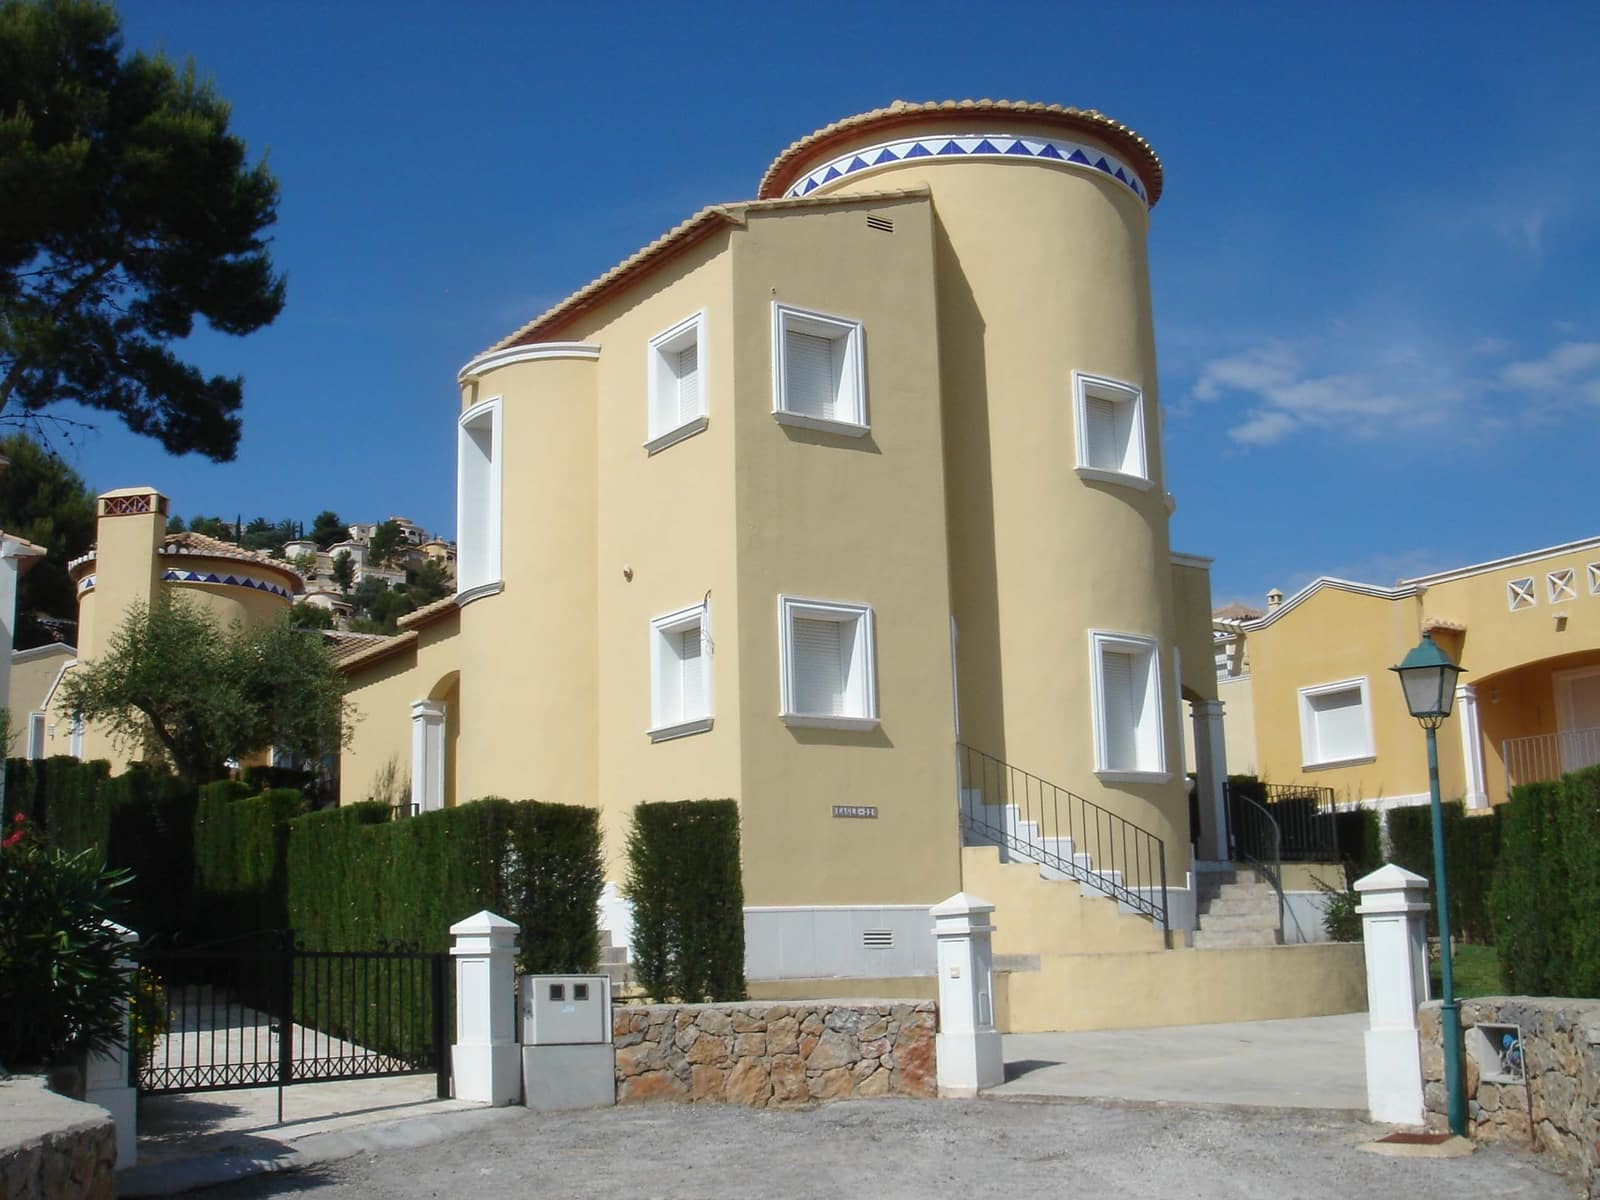 3 bedroom Villa for sale in Pedreguer with pool - € 197,500 (Ref: 4588748)